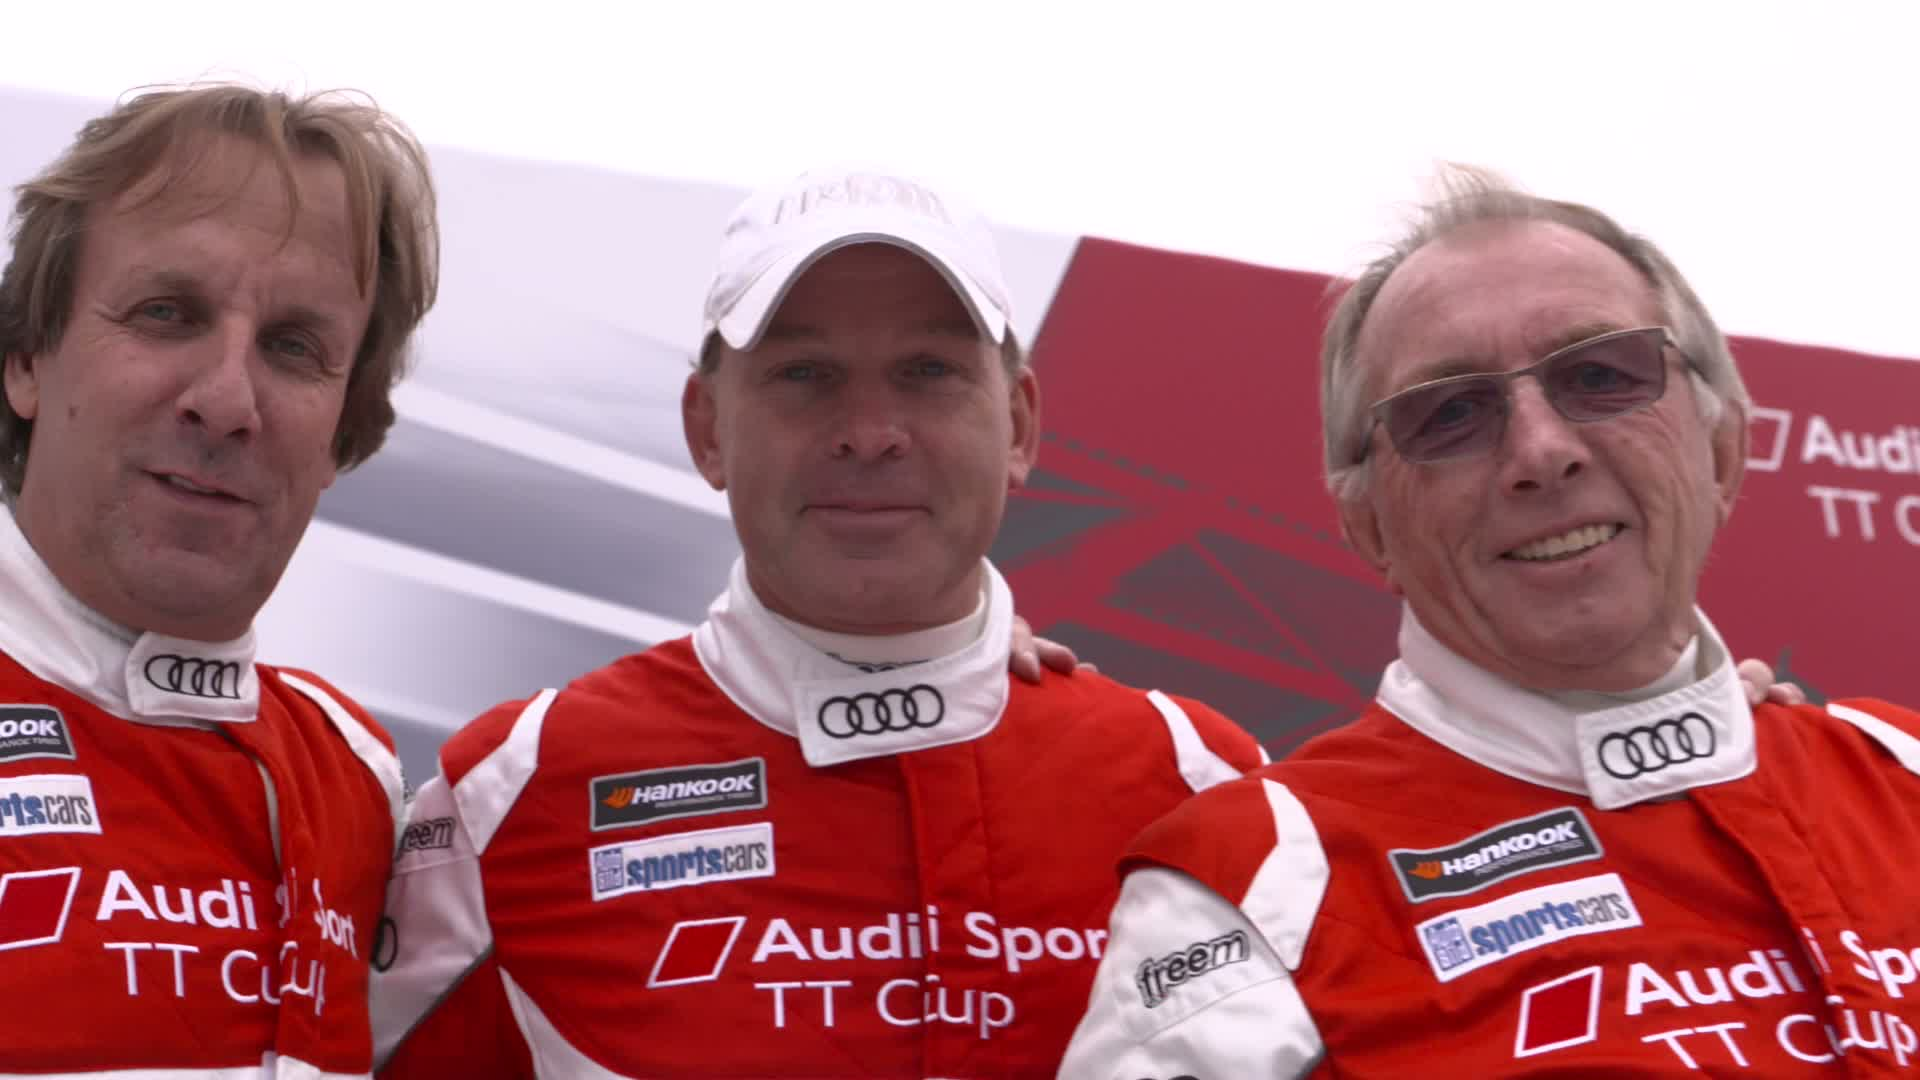 60 Seconds of Audi Sport 75/2015 - Audi Sport TT Cup, Vorschau Oschersleben